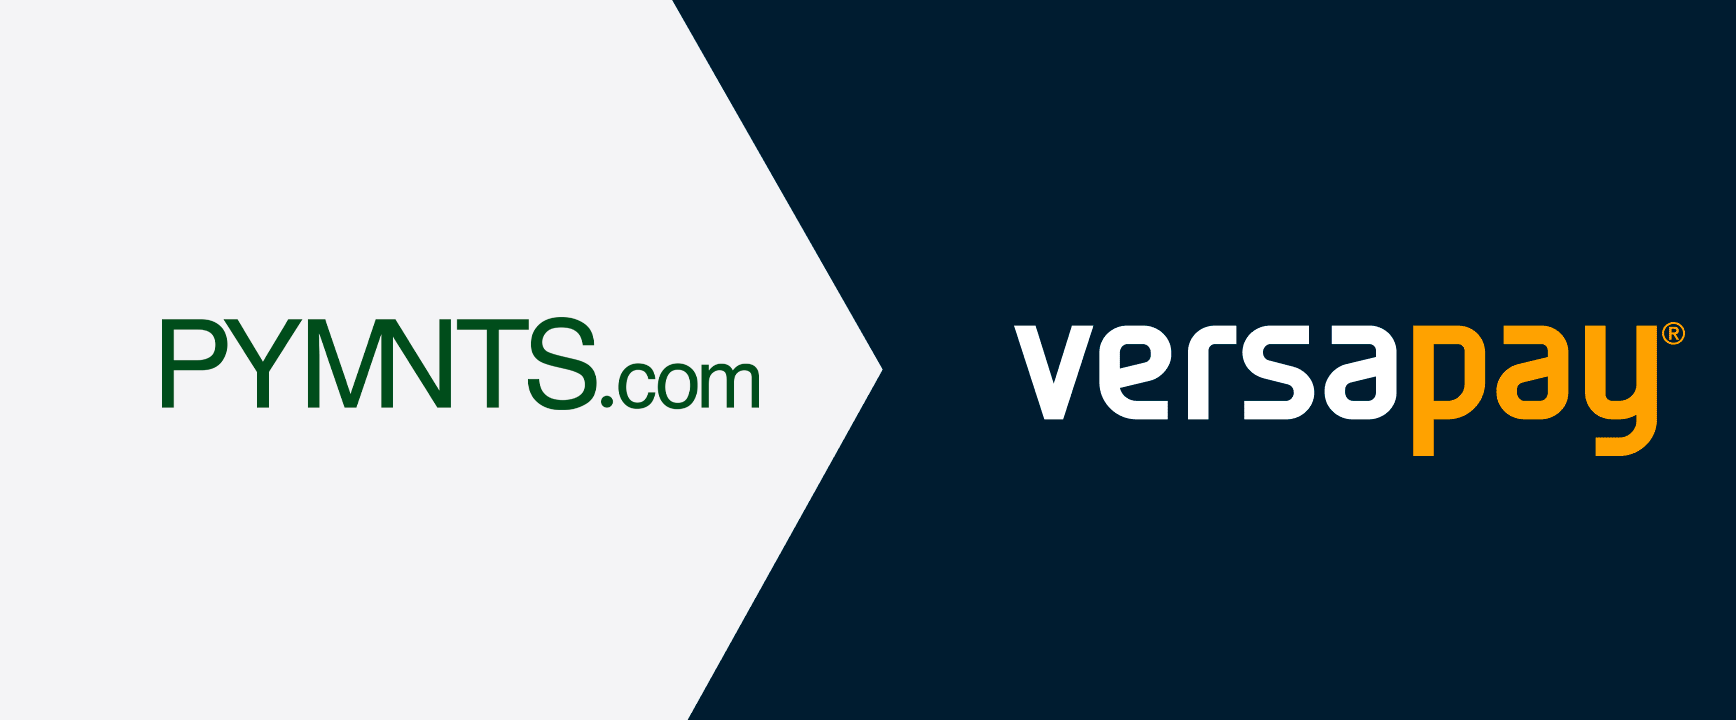 Versapay and PYMNTS Publish Research Based on 400 CFOs' Insights on Digital Transformation in Accounting and Finance Departments